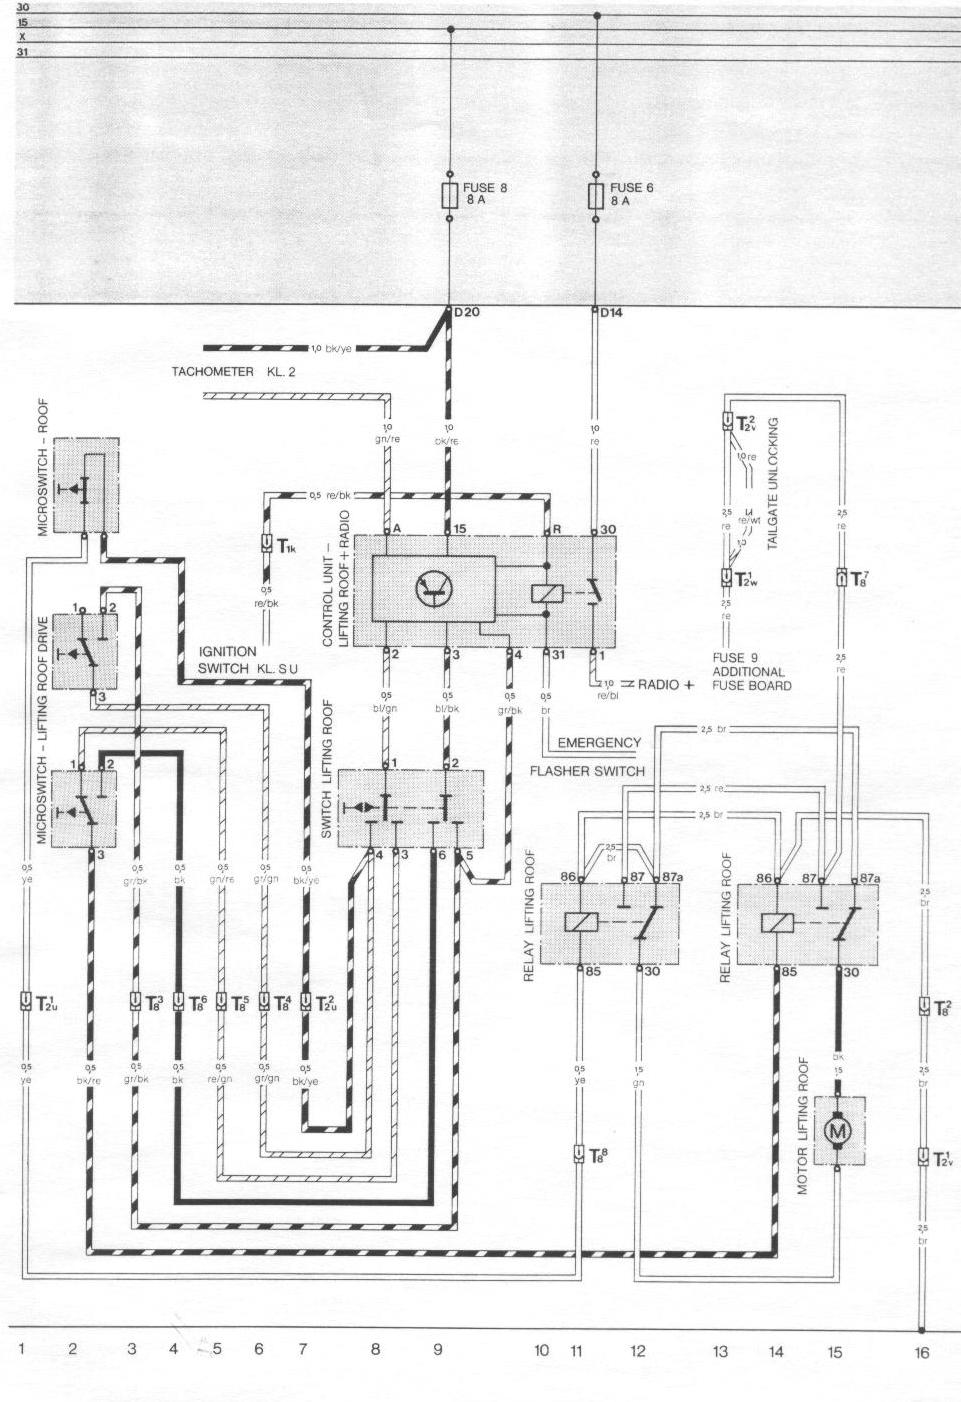 porsche 944 sunroof wiring diagram animal cell membrane labeled 84 fuse box | get free image about